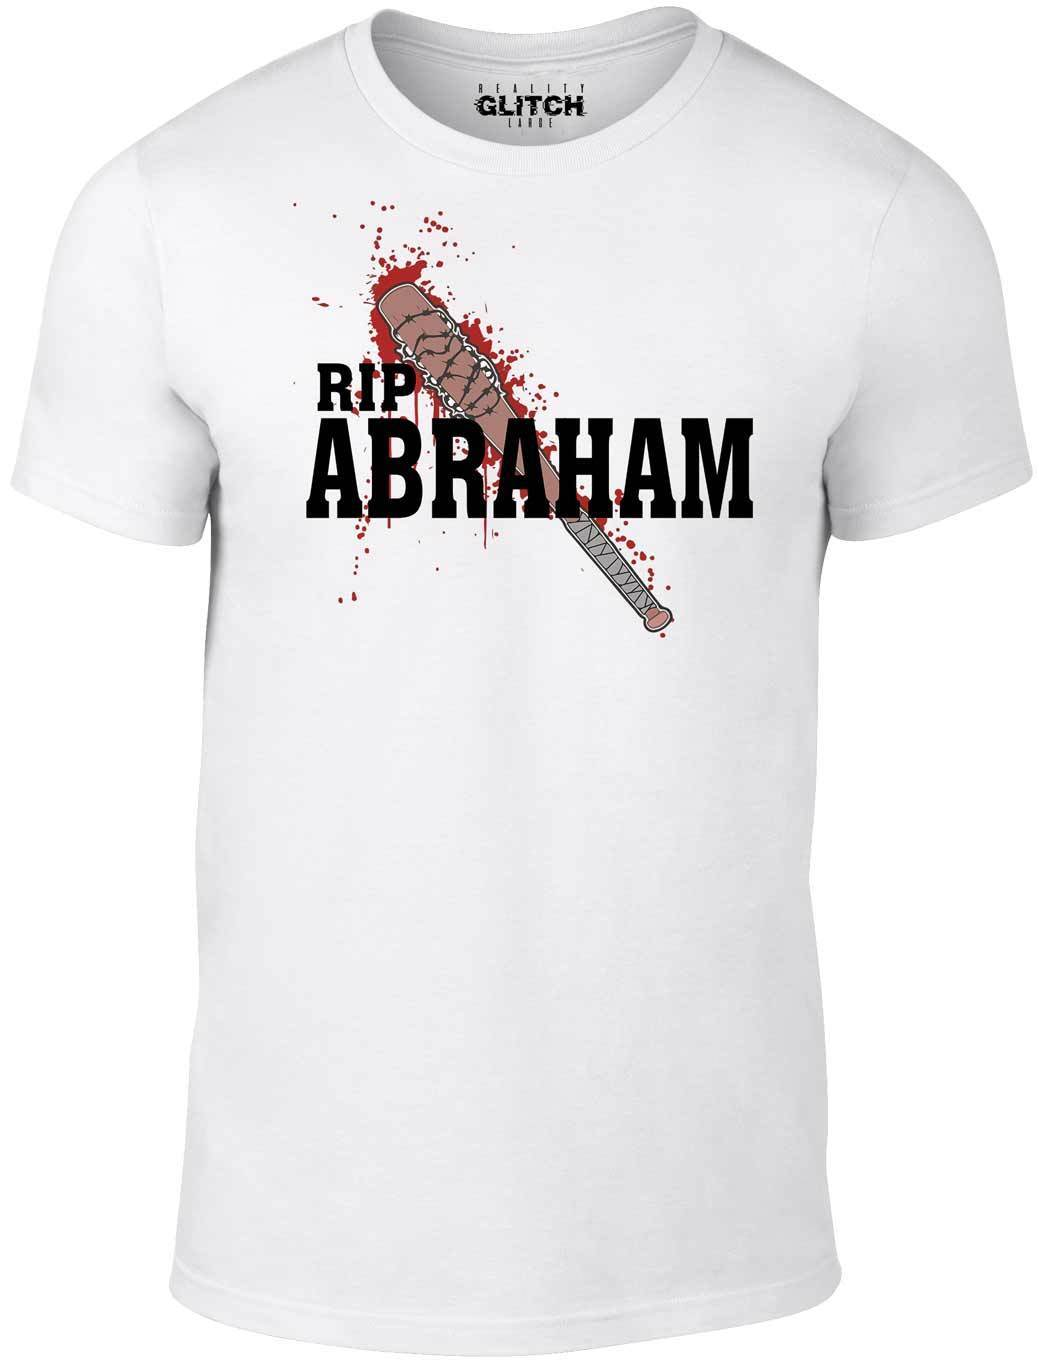 R.I.P Abraham T-Shirt - Inspired by Walking Dead Walkers Zombies Negan Grimes TV